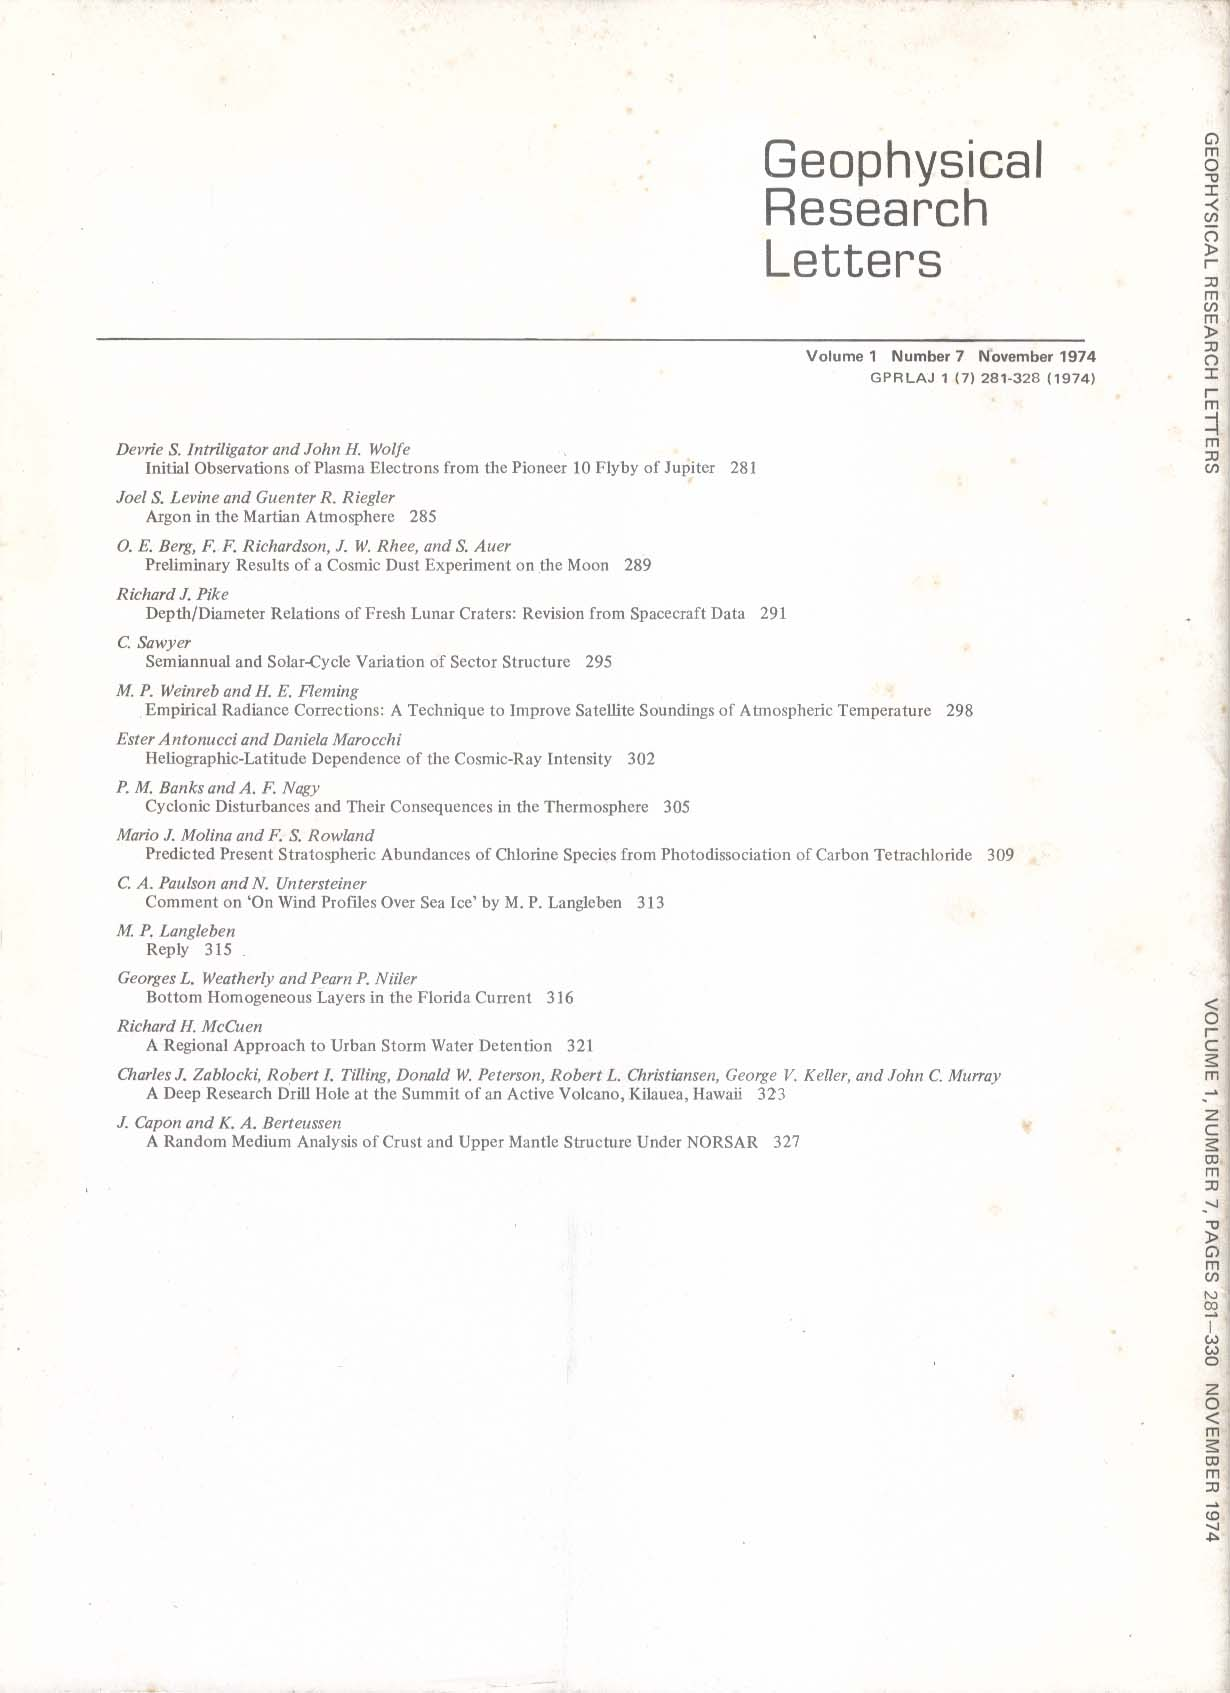 GEOPHYSICAL RESEARCH LETTERS Pioneer 10 Jupiter Martian Argon Cosmic-Ray 11 1974